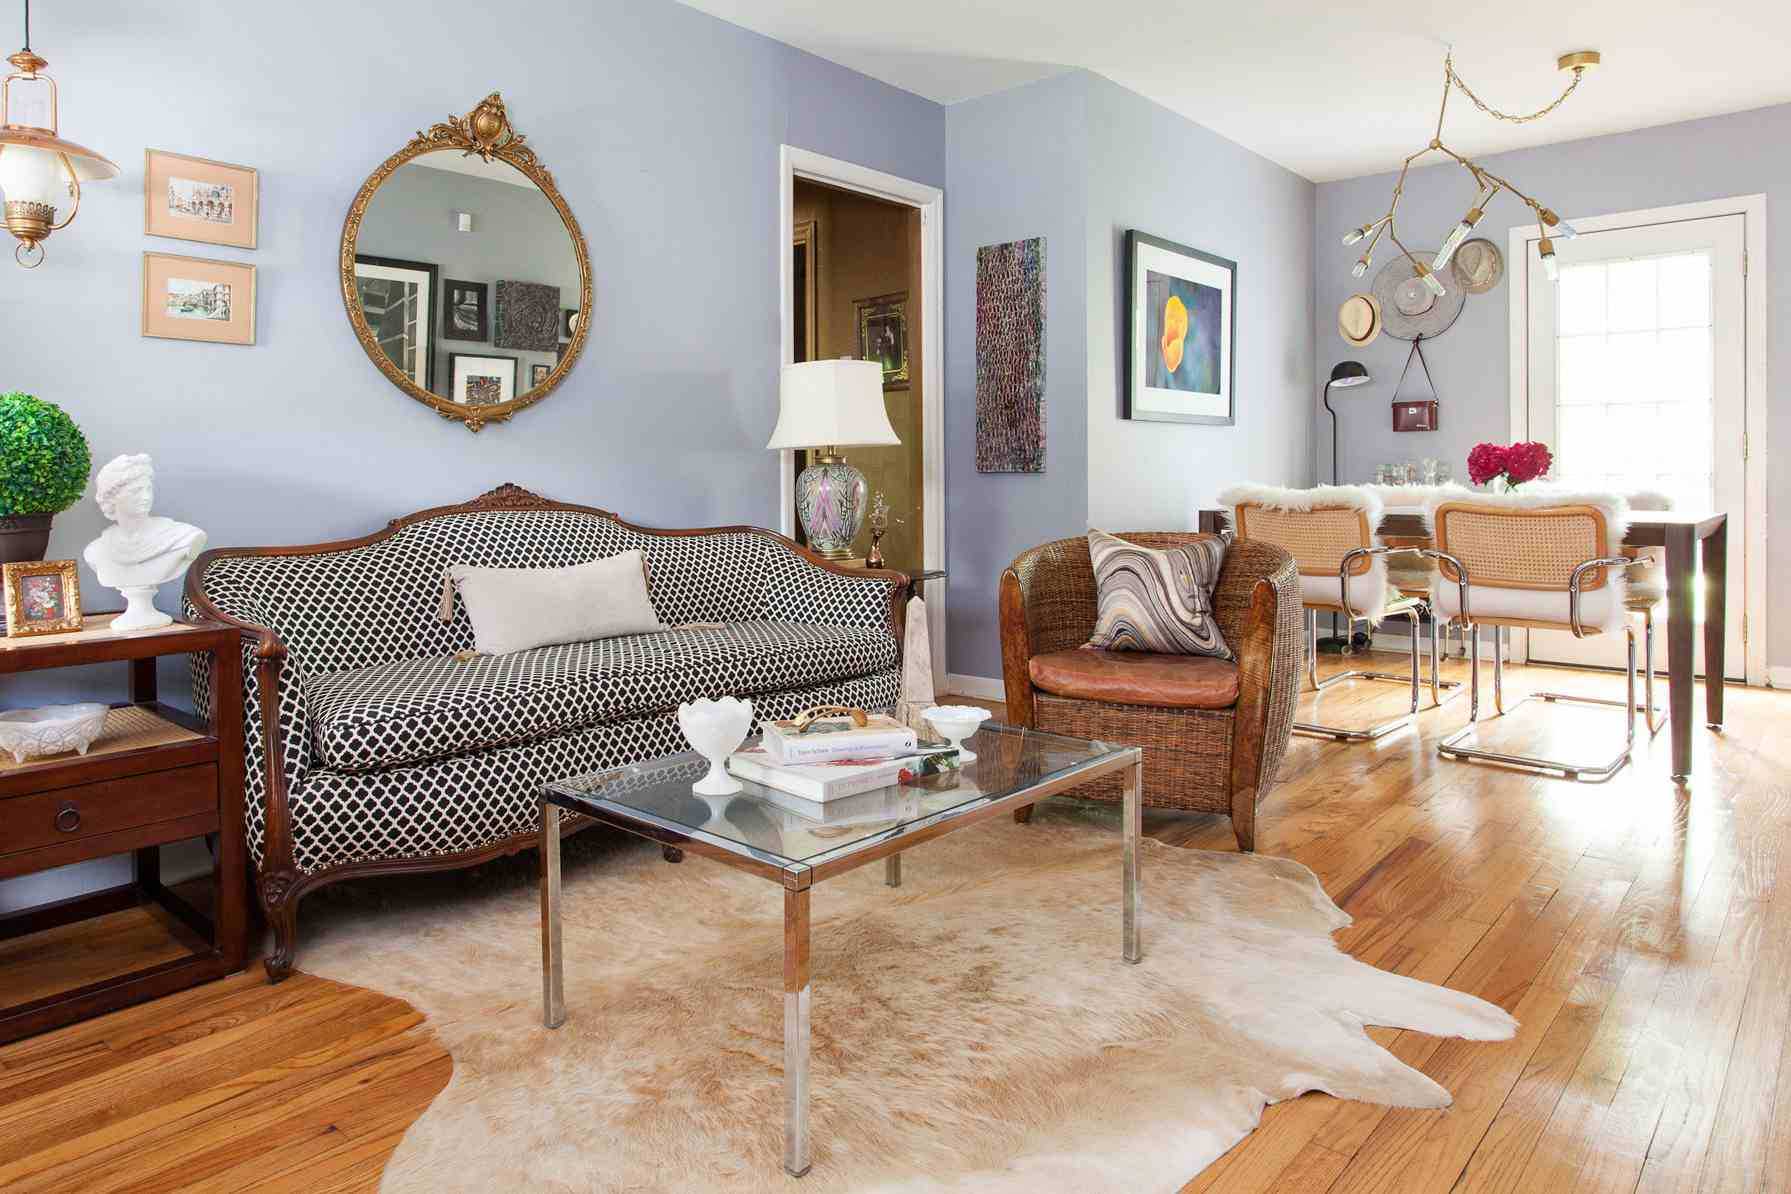 28 Ways To Add Retro Style To Your Decor